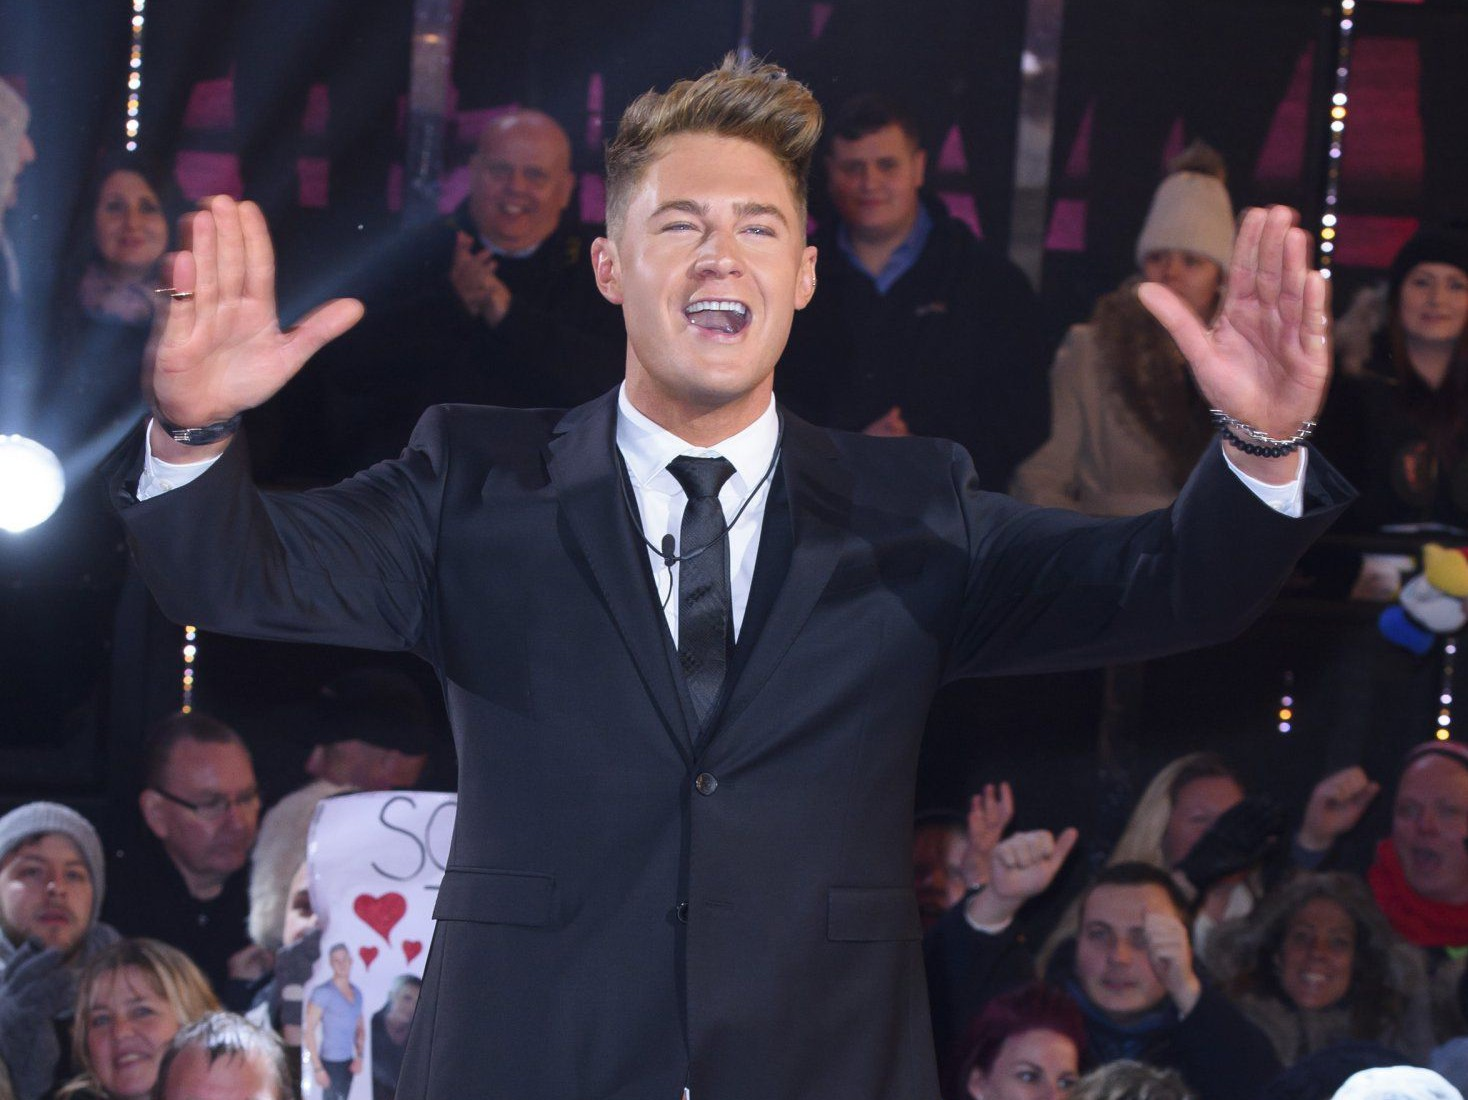 Real reason Scotty T missed David Gest's funeral – a phone prank